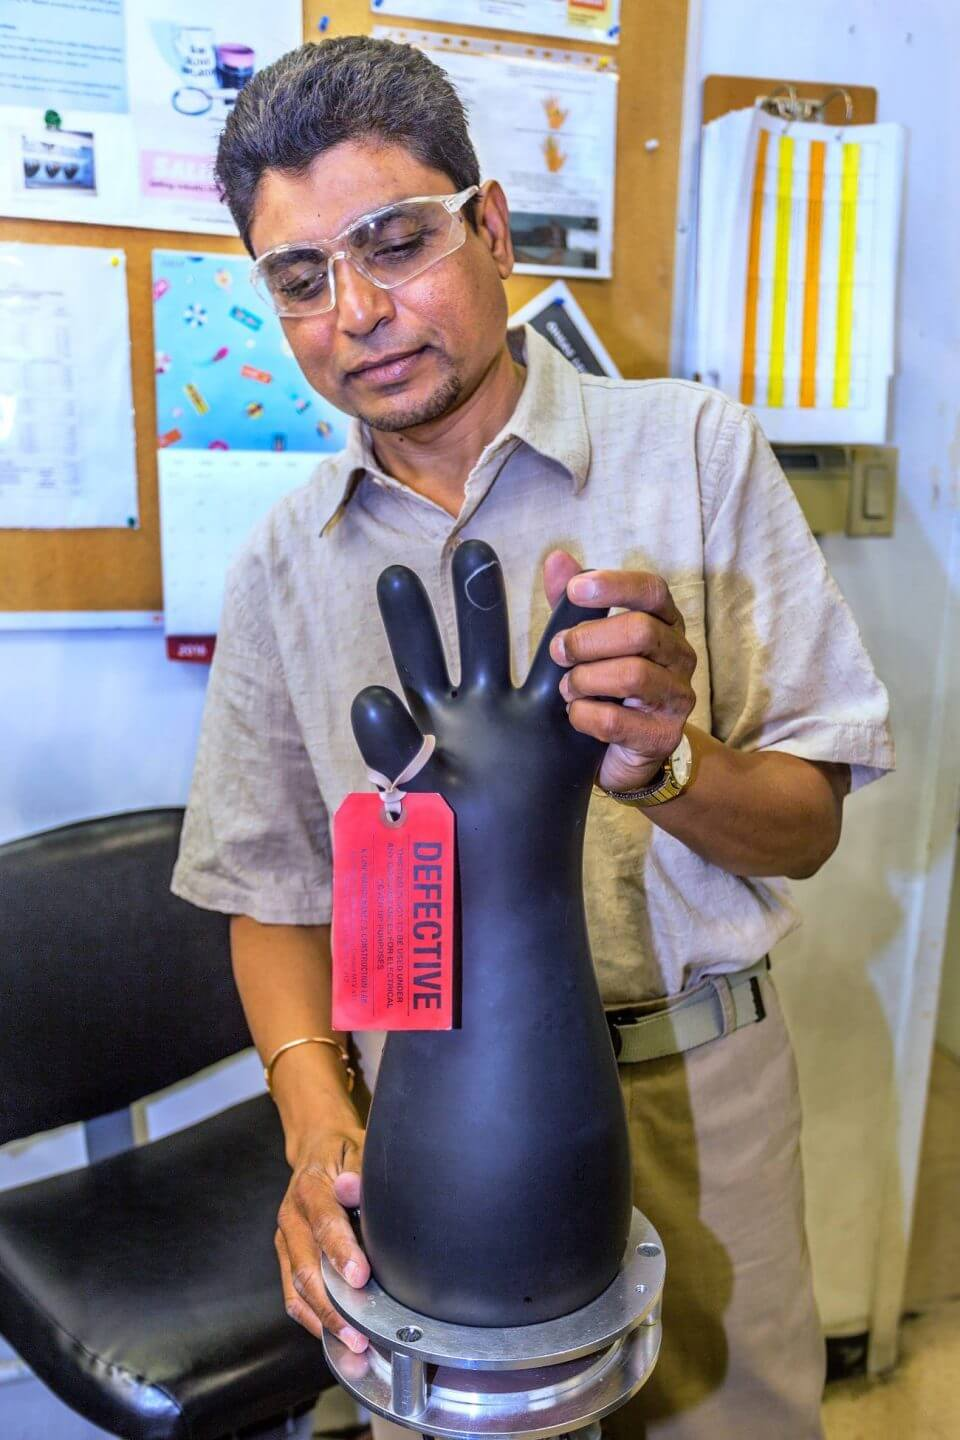 Lab employee inspecting rubber gloves